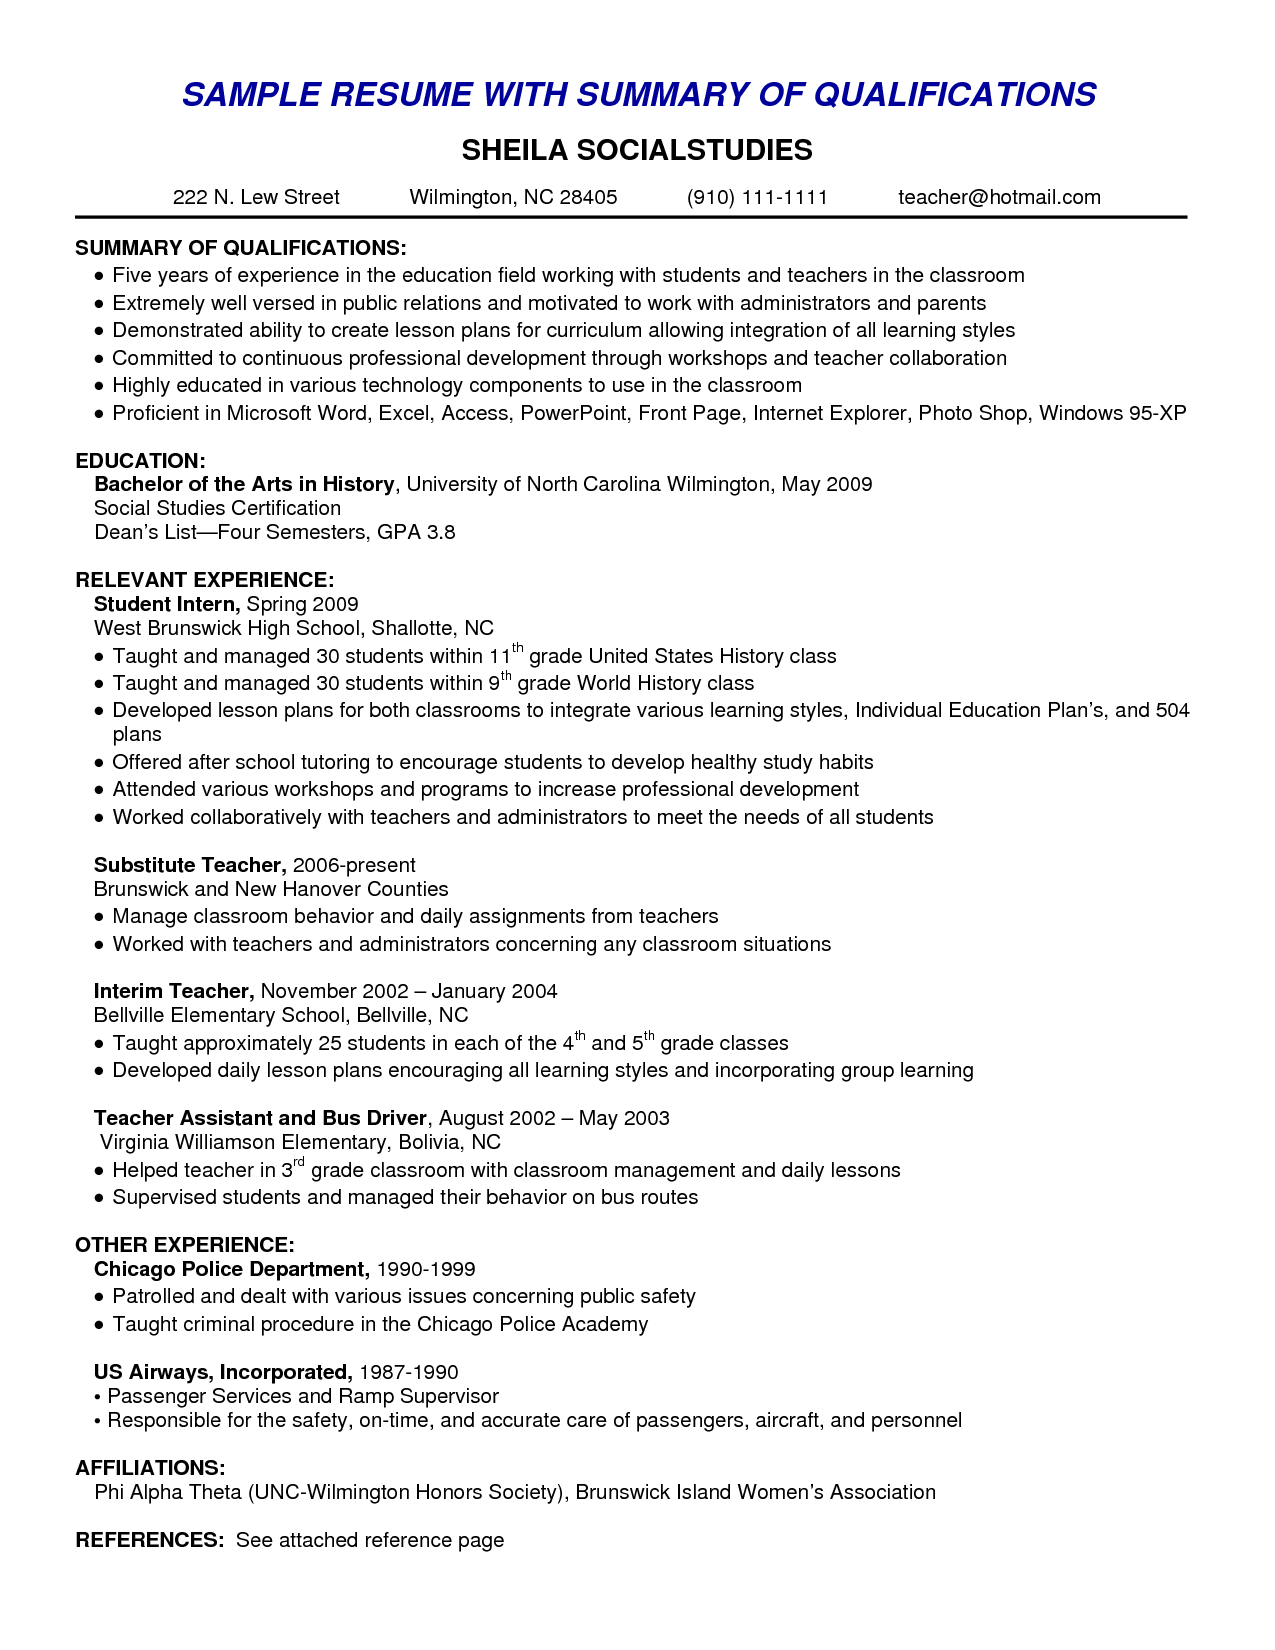 Free Download Resume For Freshers Looking For The First Job 9 Professional Summary Examples Samplebusinessresume